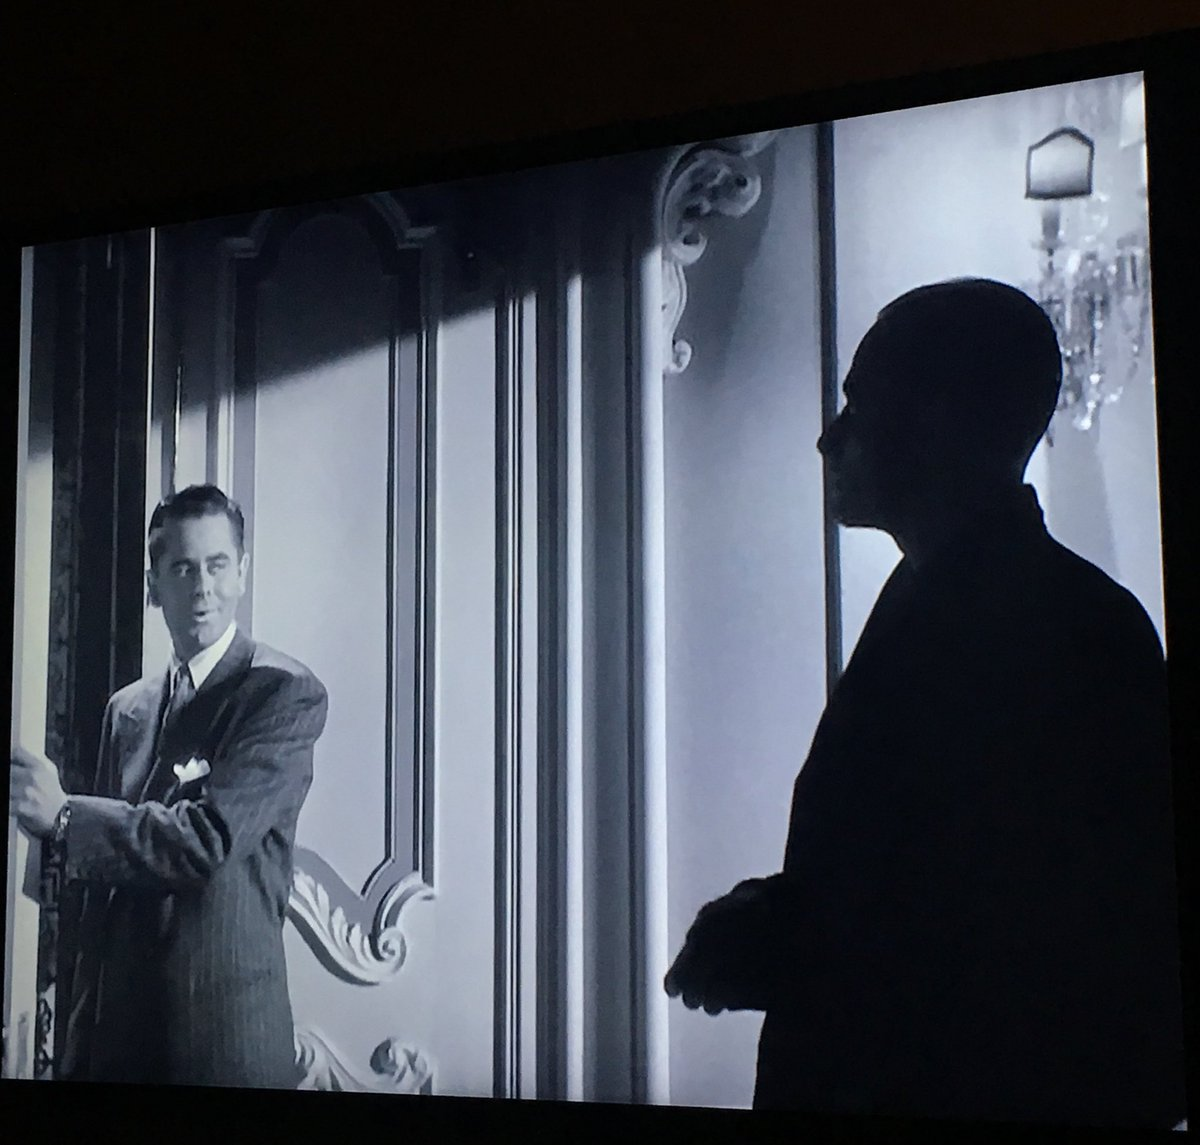 The light illuminates Johnny while a heavy shadow casts itself upon Mundson and holds tightly. #TCMParty #Gilda https://t.co/6z0vepPmsW